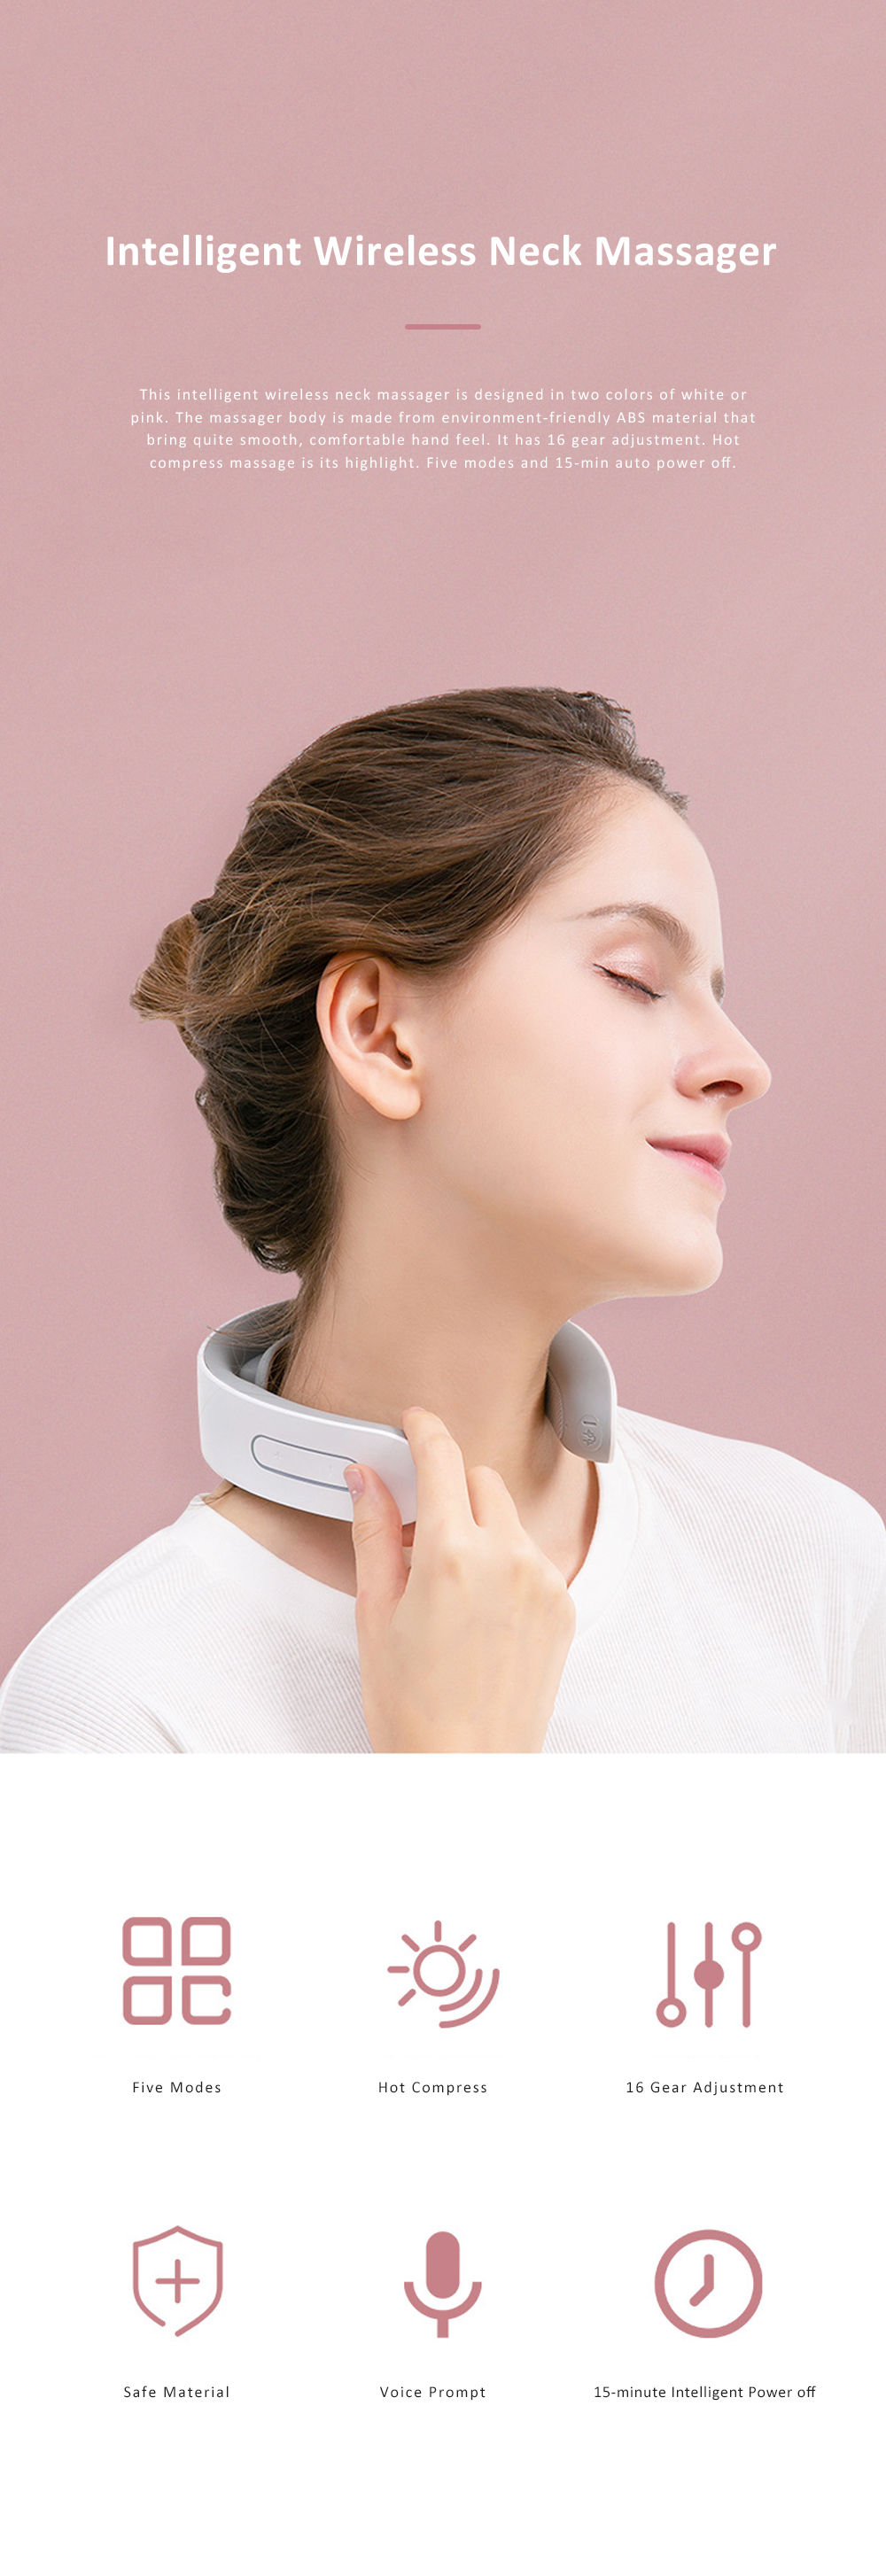 KONKA Multifunctional Neck Massager for Neck Relaxation Intelligent Wireless Neck Guard Instrument Electronic Hot Compress Neck Massager 0